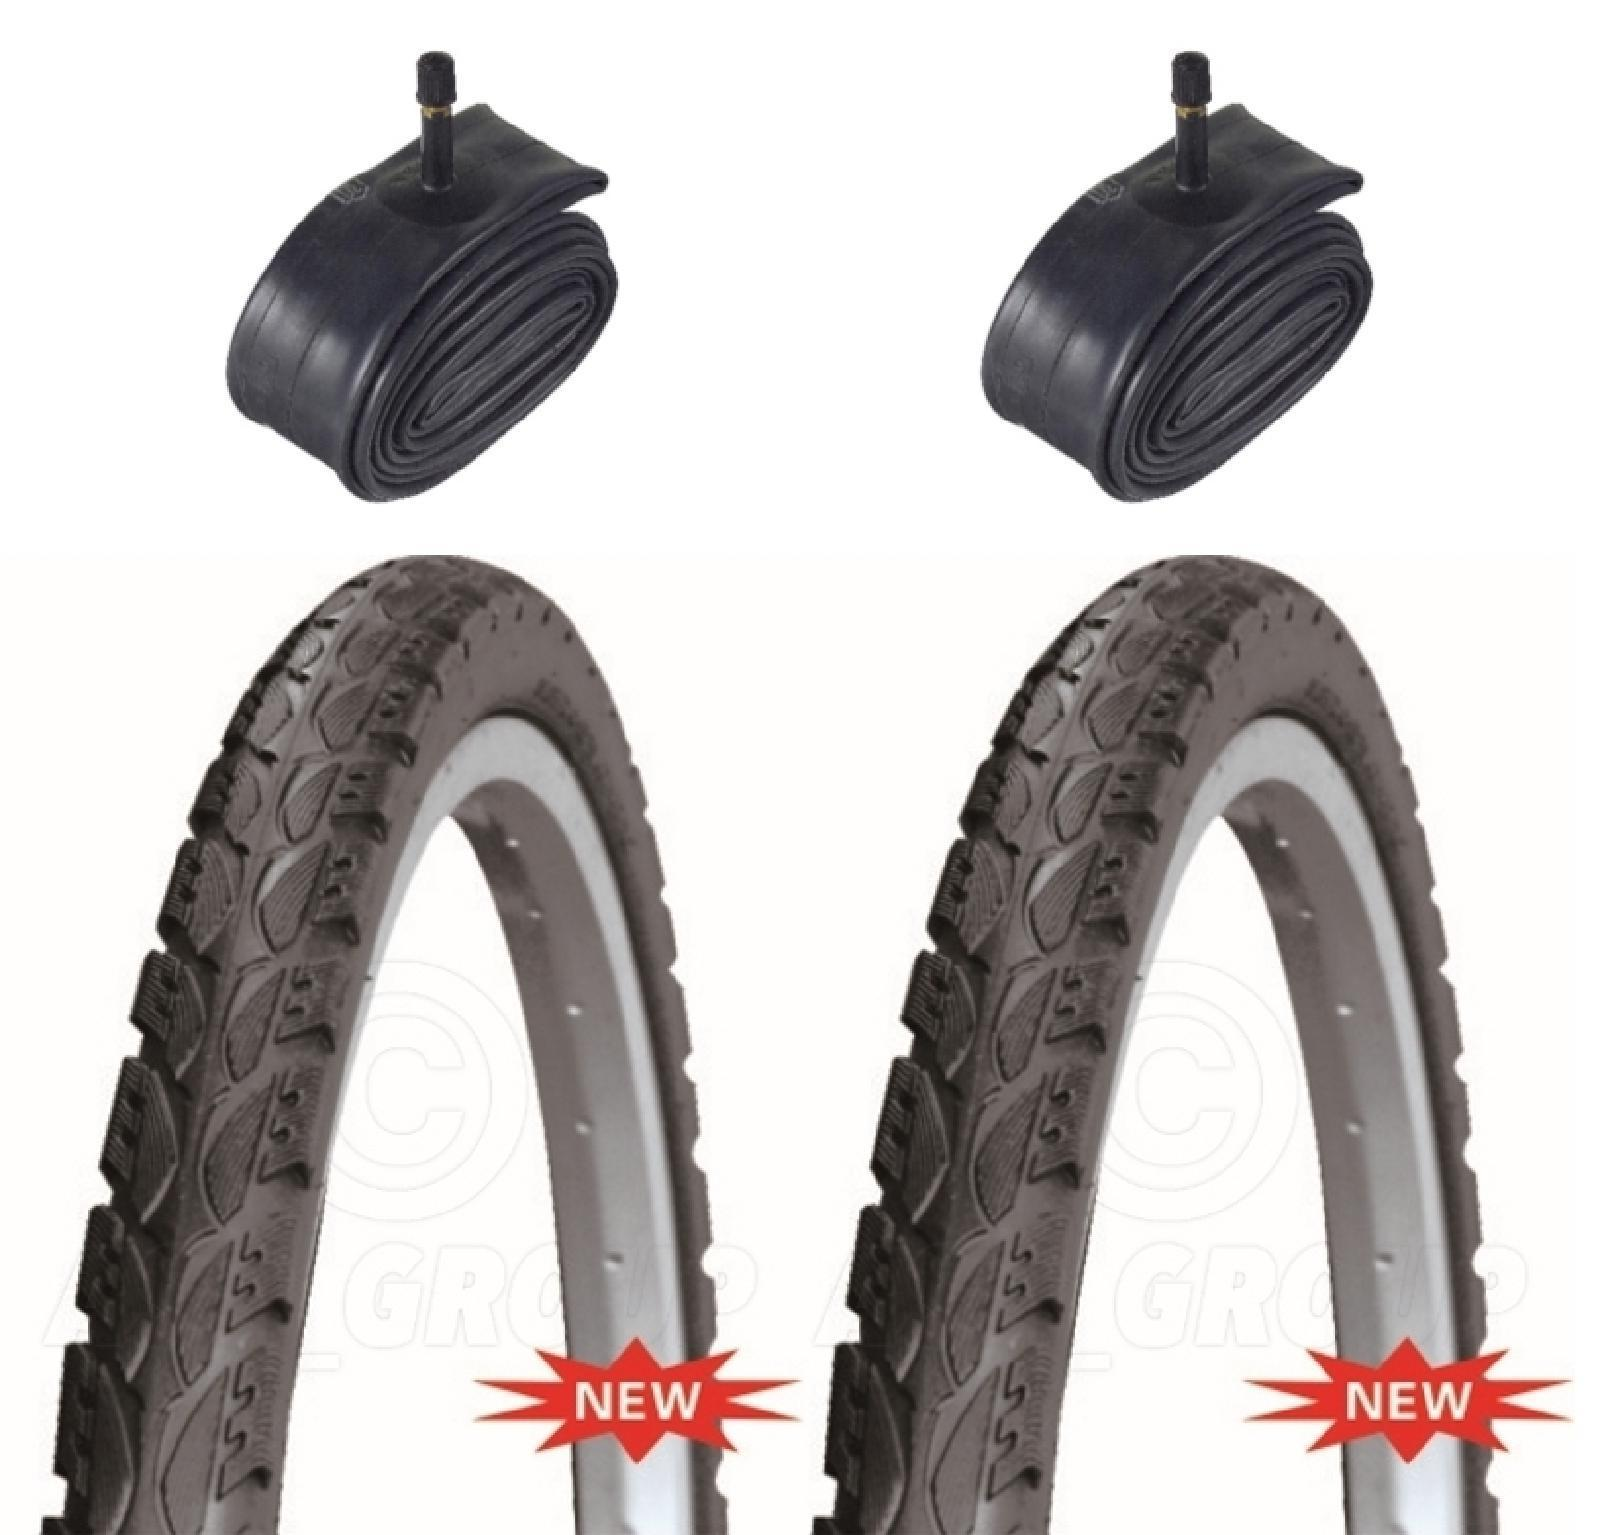 2 Bicycle Tyres Bike Tires - Road / Highway - 26 x 1.75 - With Schrader Tubes